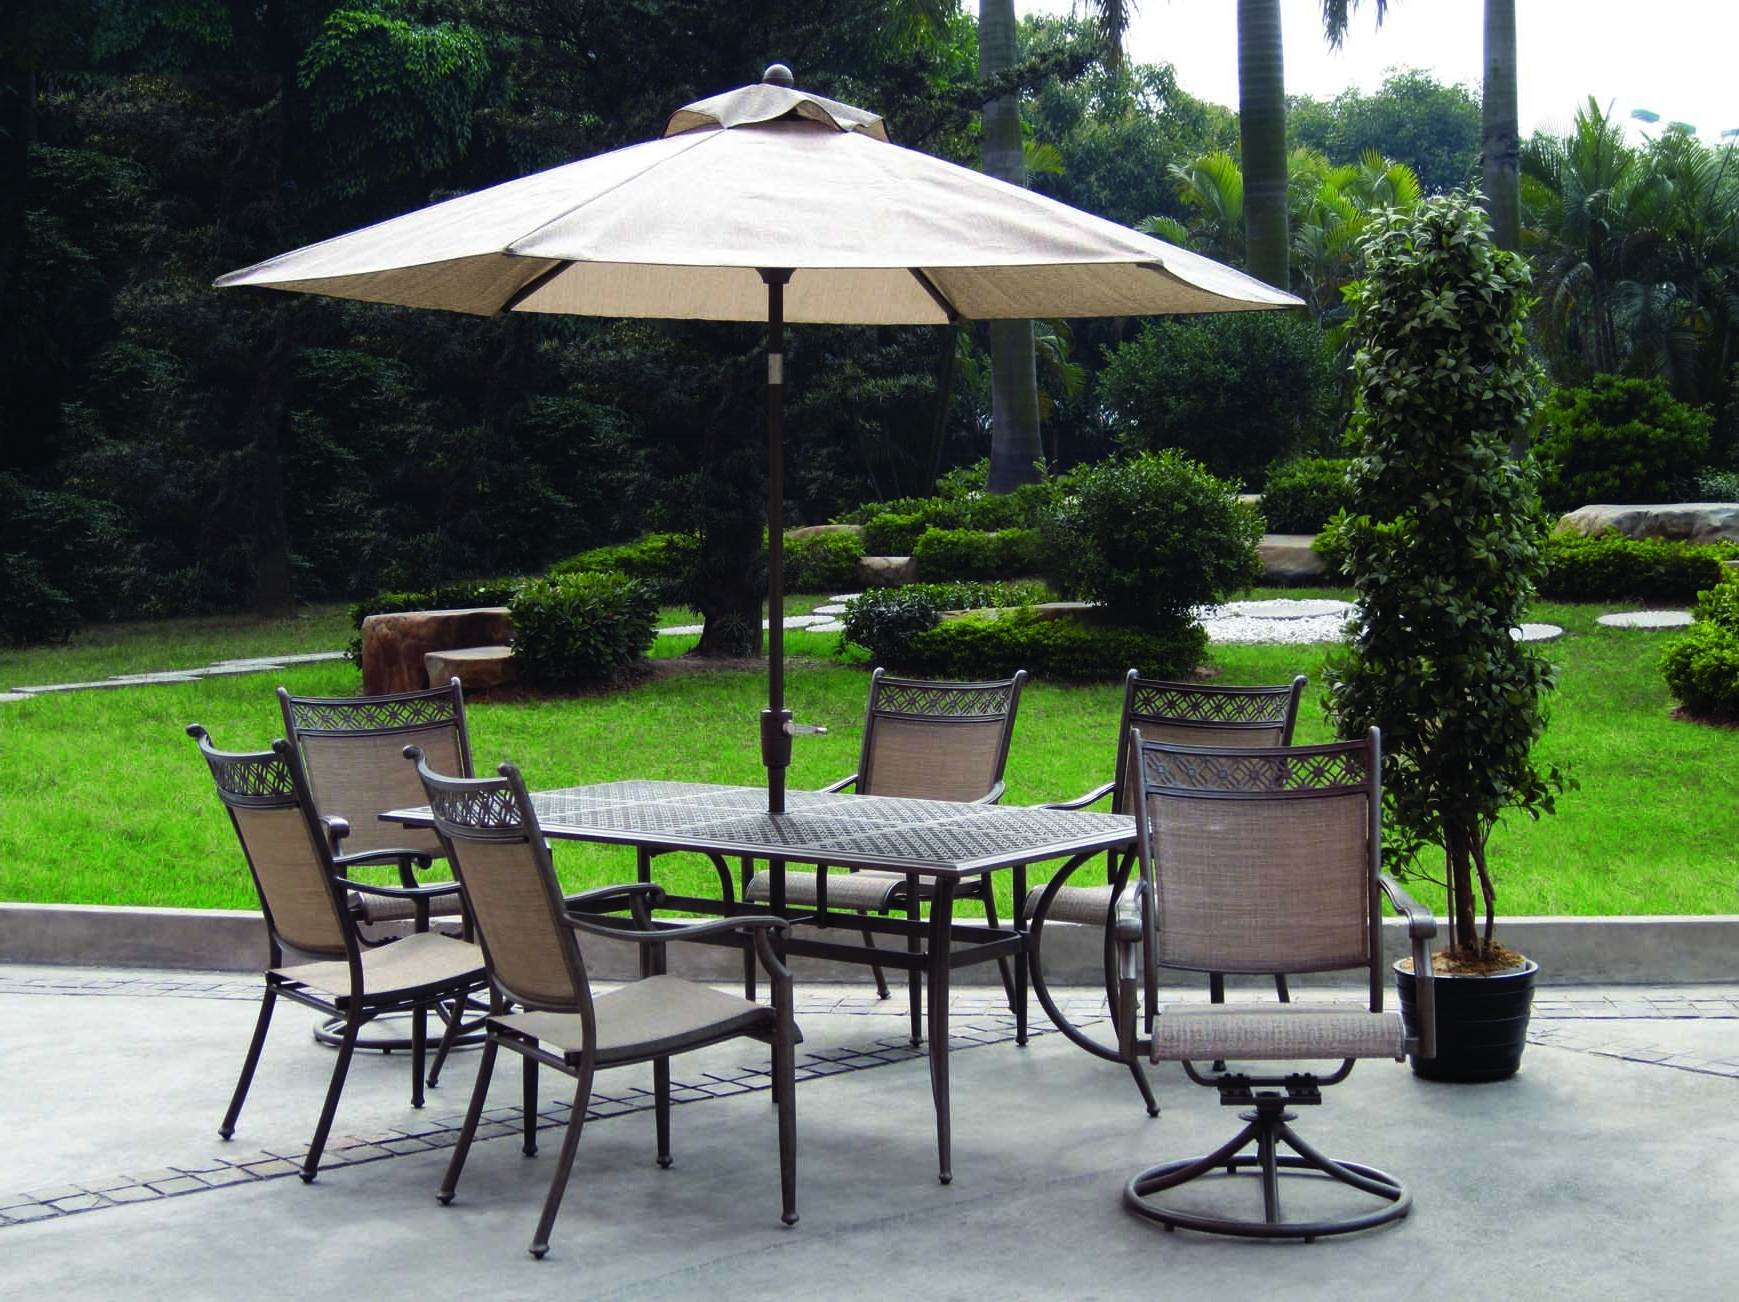 Home Depot Outdoor Furniture Umbrellas With 2 Swivel Chair Pine Intended For Fashionable Patio Furniture With Umbrellas (View 9 of 20)